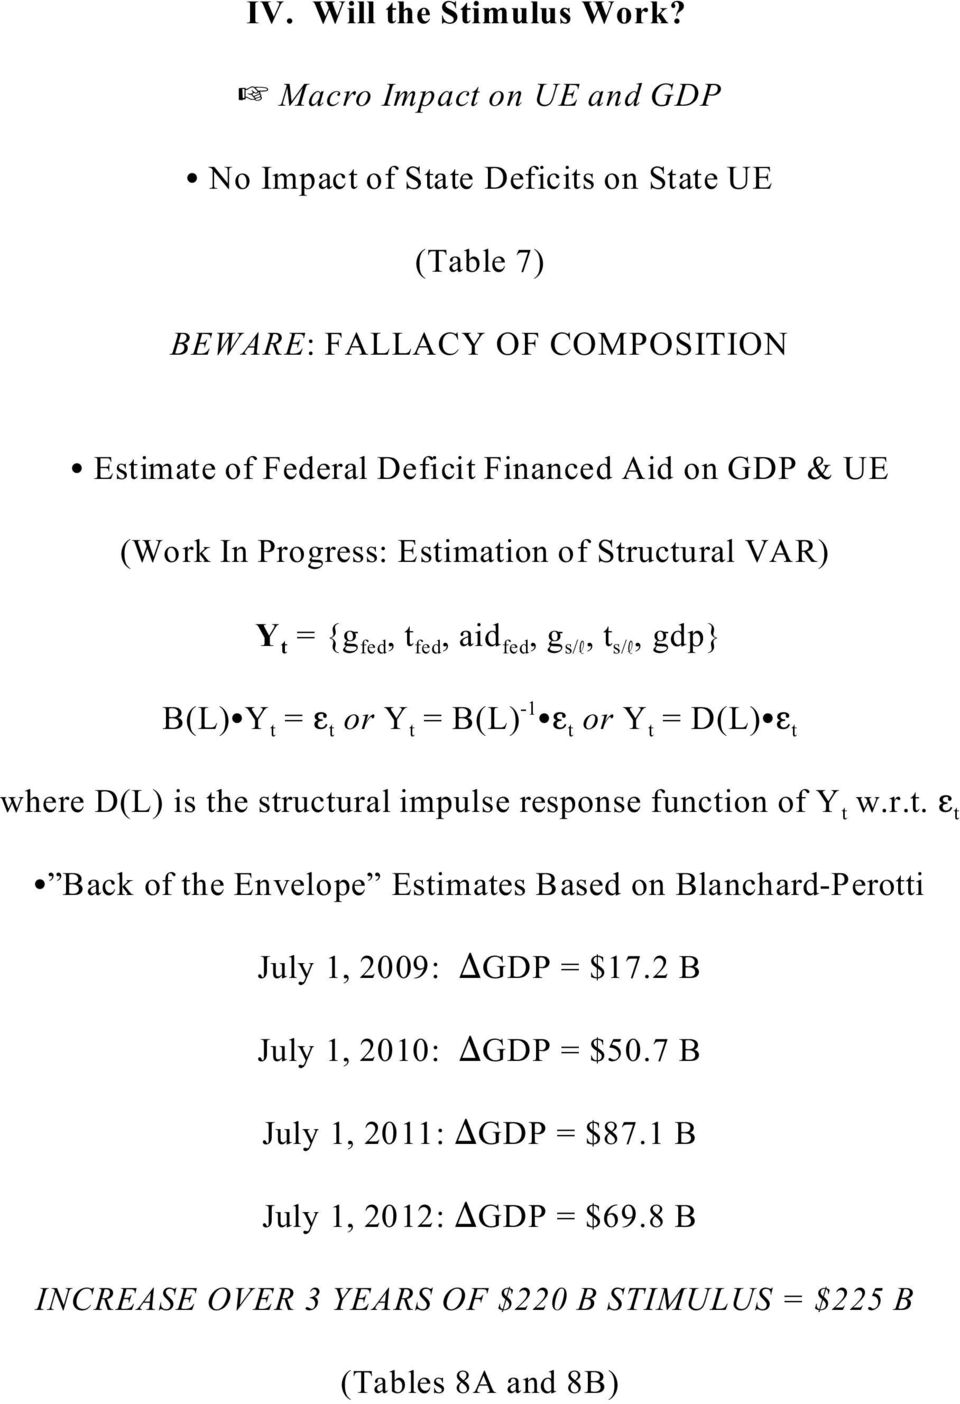 (Work In Progress: Estimation of Structural VAR) Y t = {g fed, t fed, aid fed, g s/, t s/, gdp} B(L) Y t = t or Y t = B(L) -1 t or Y t = D(L) t where D(L) is